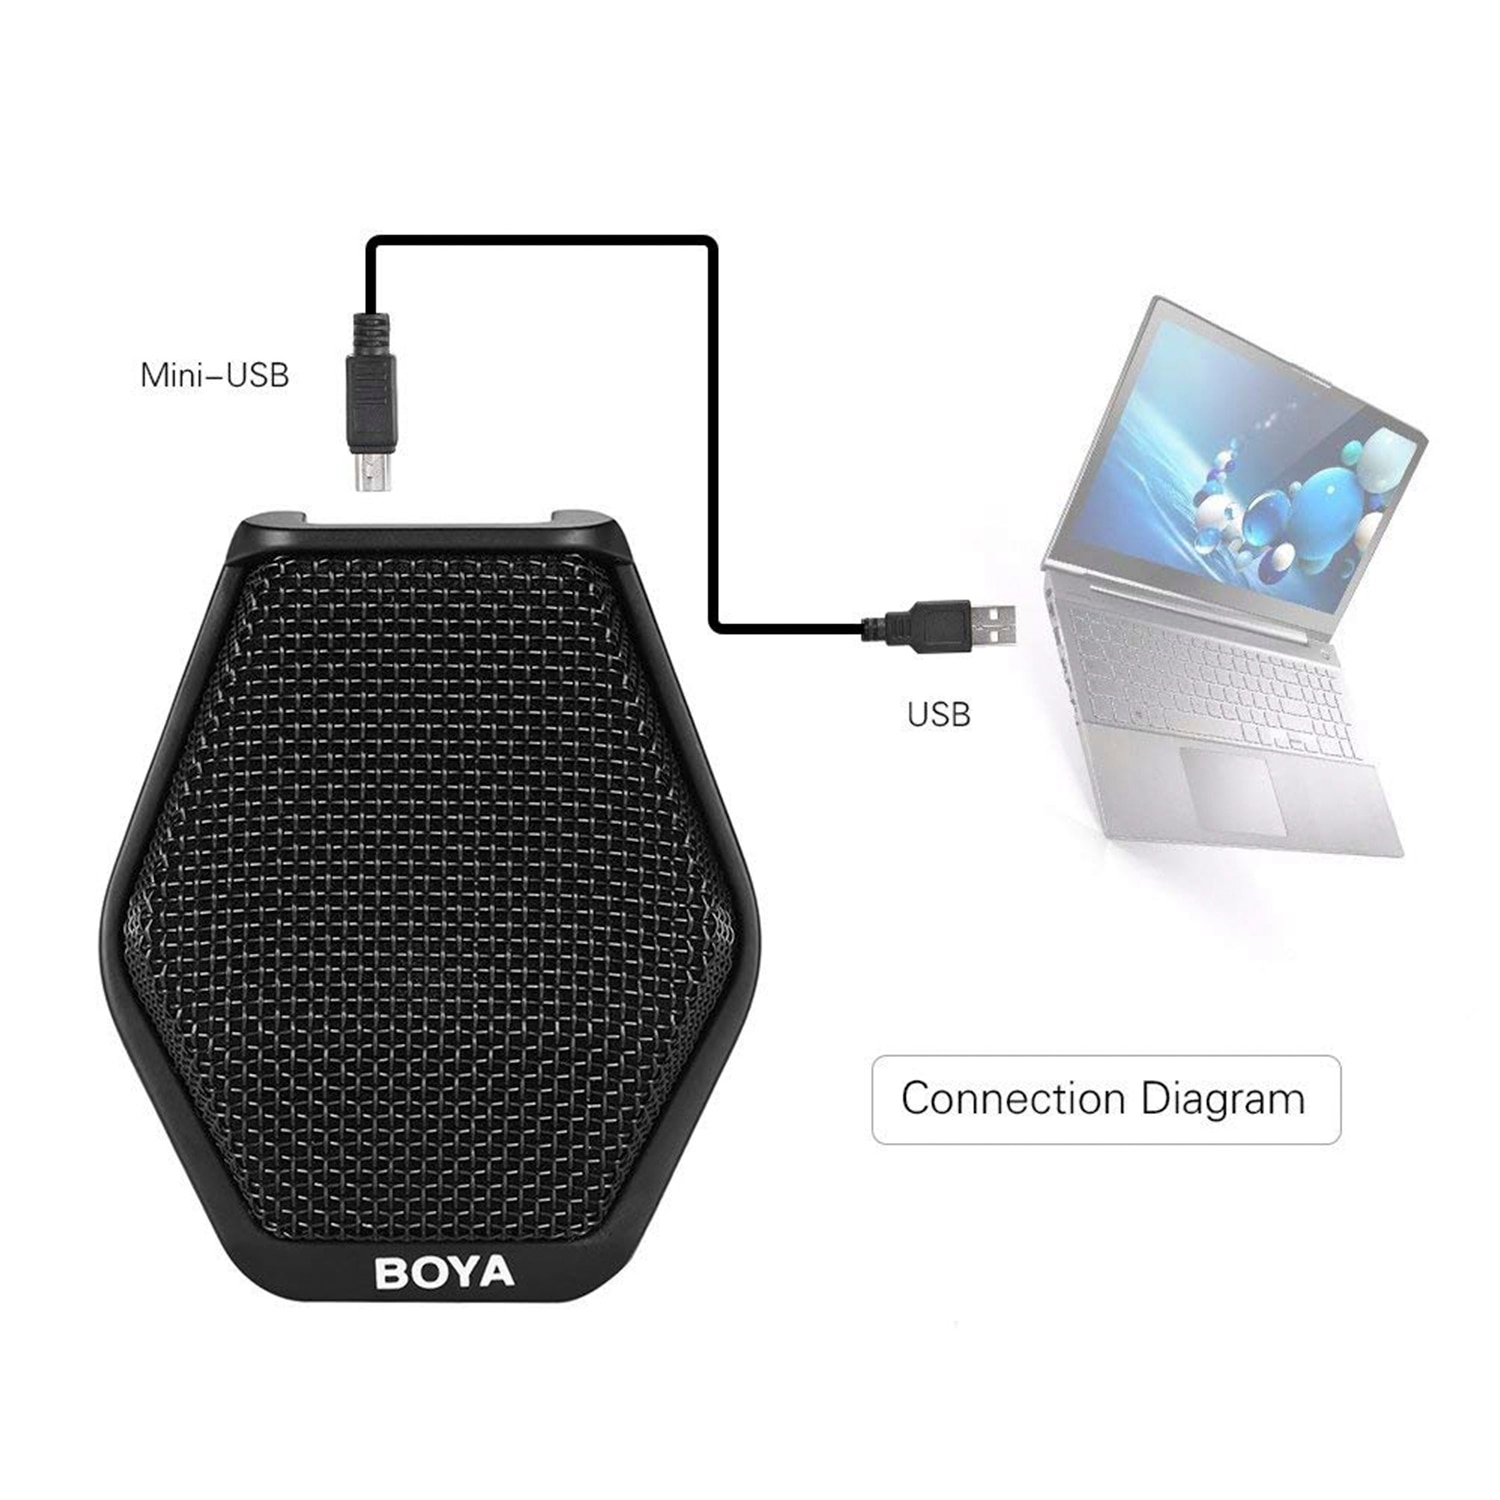 BOYA BY-MC2 USB Condenser Desktop Conference Computer Microphone with 180 Degree / 20' Pickup Range for Windows & Mac & Laptop enlarge